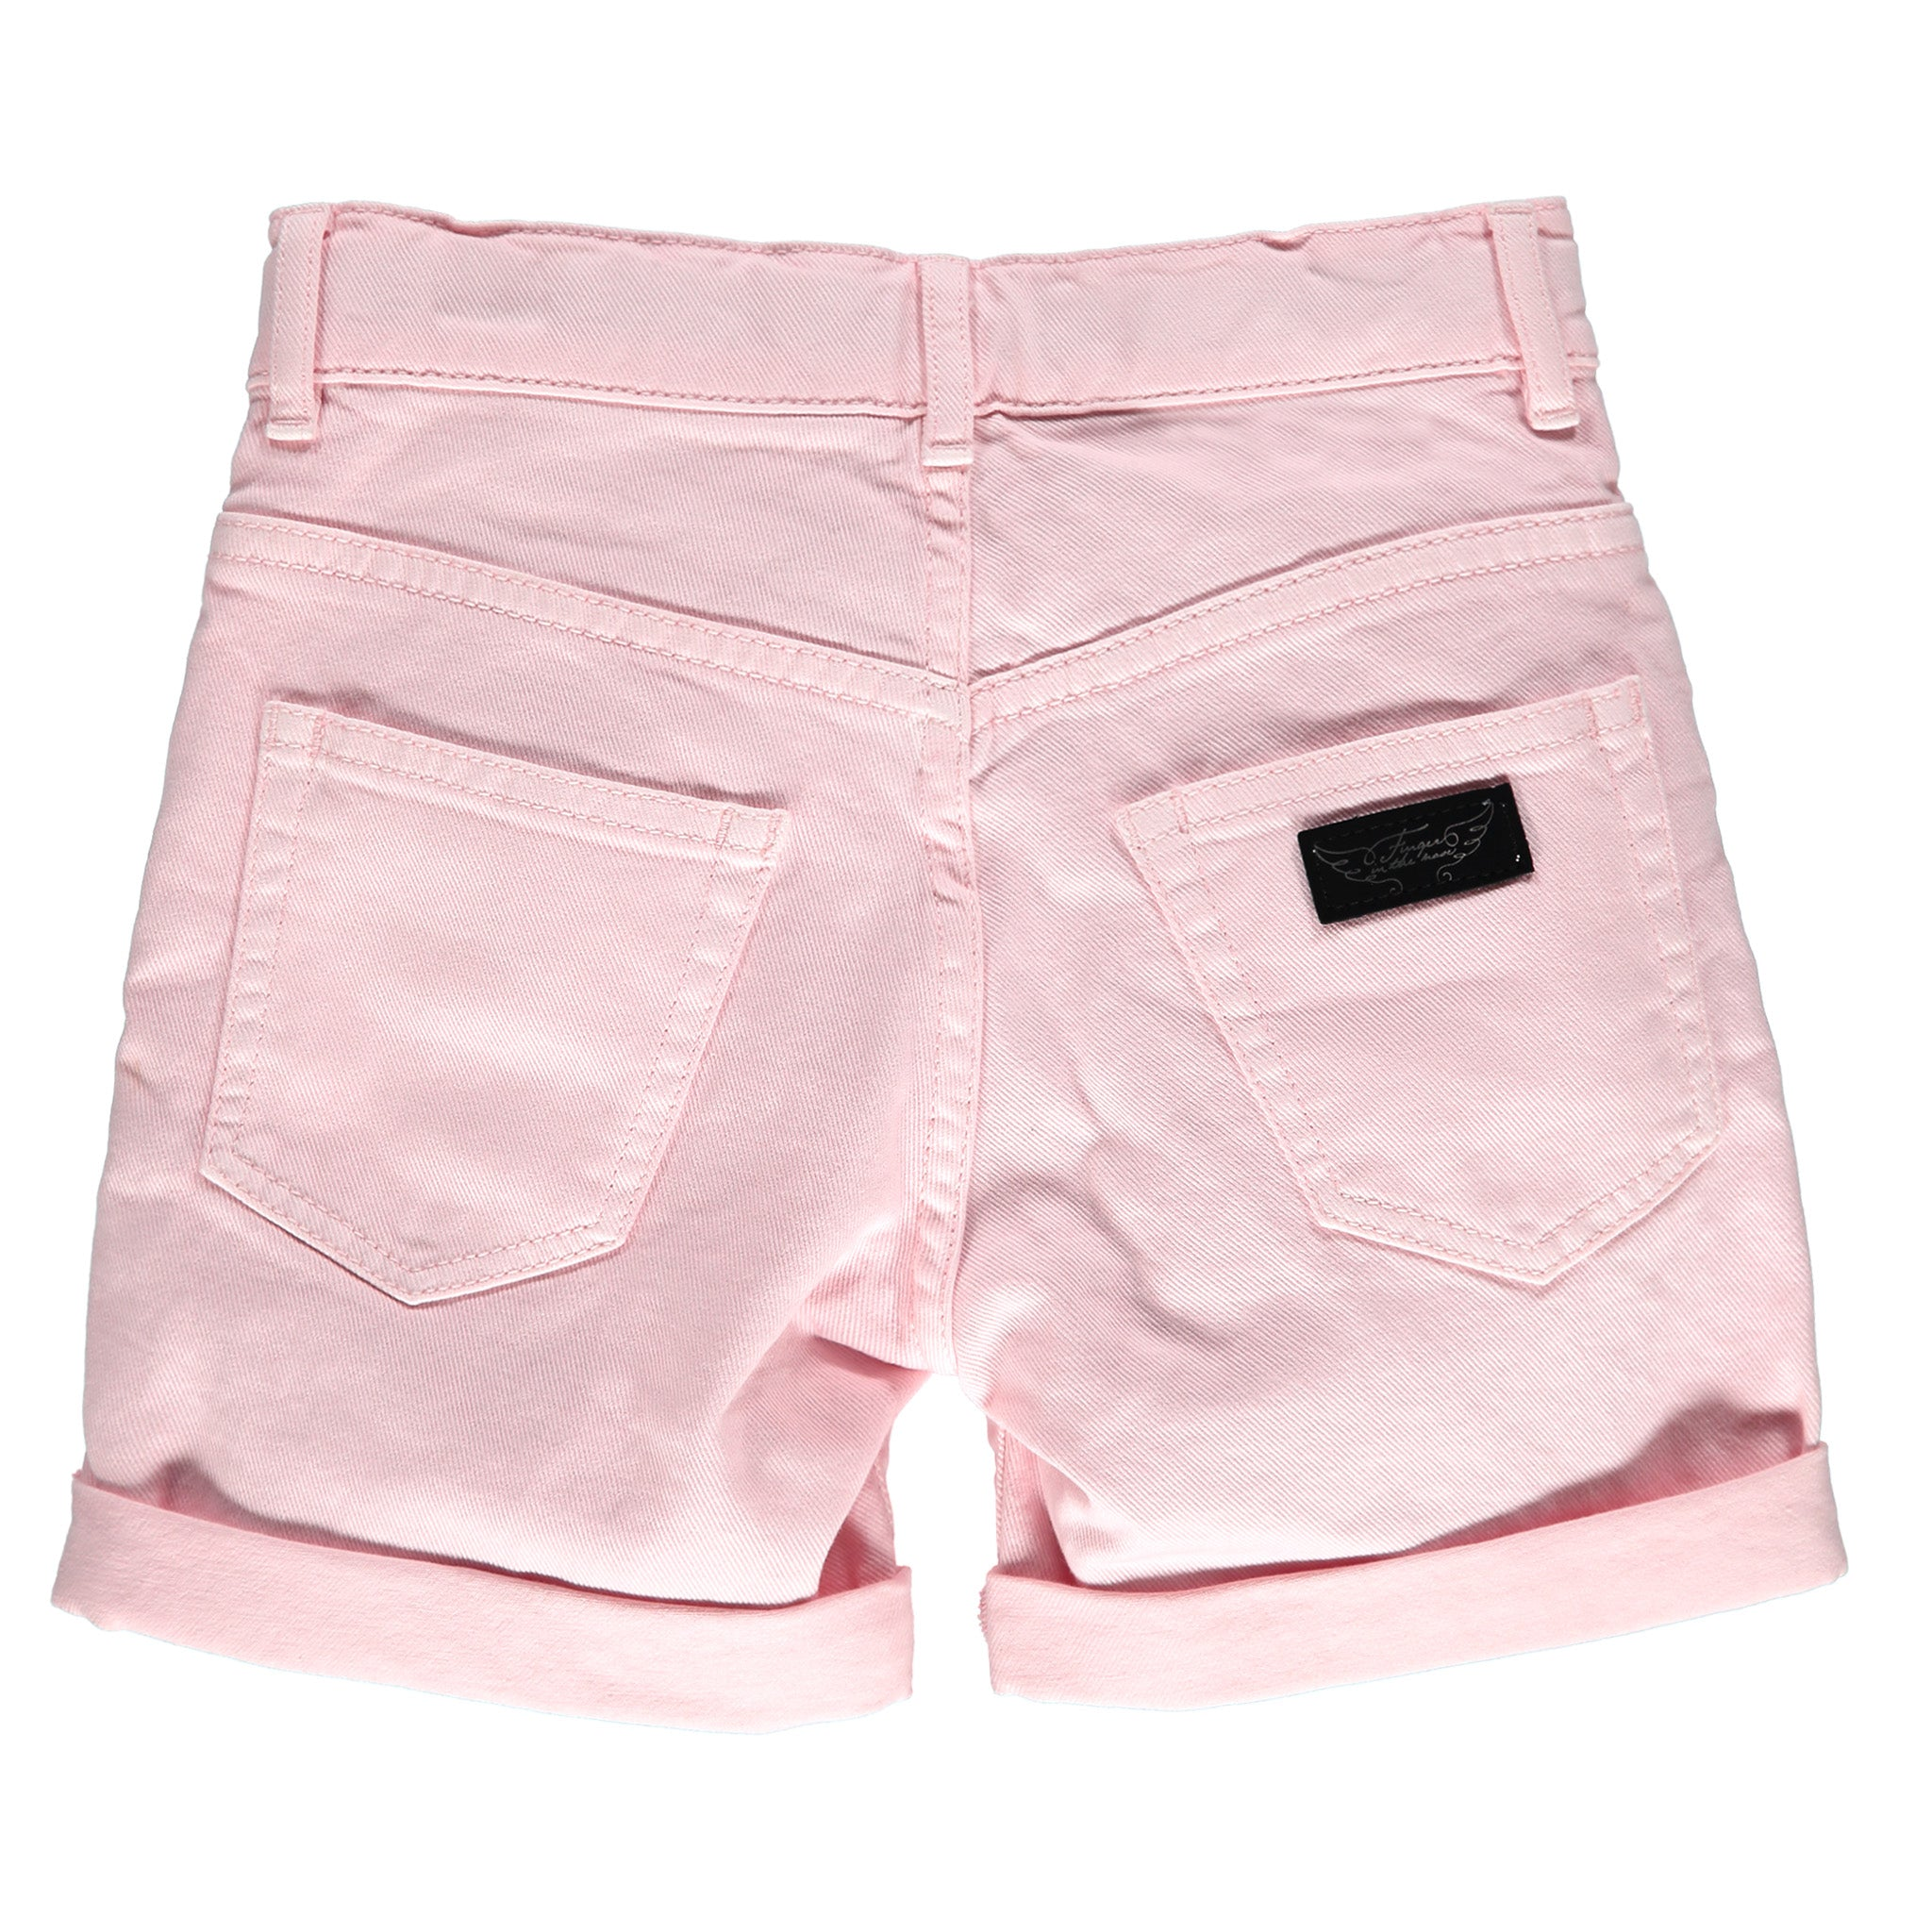 PALMA Pale Rose - 5 Pocket Boyfriend Fit Short